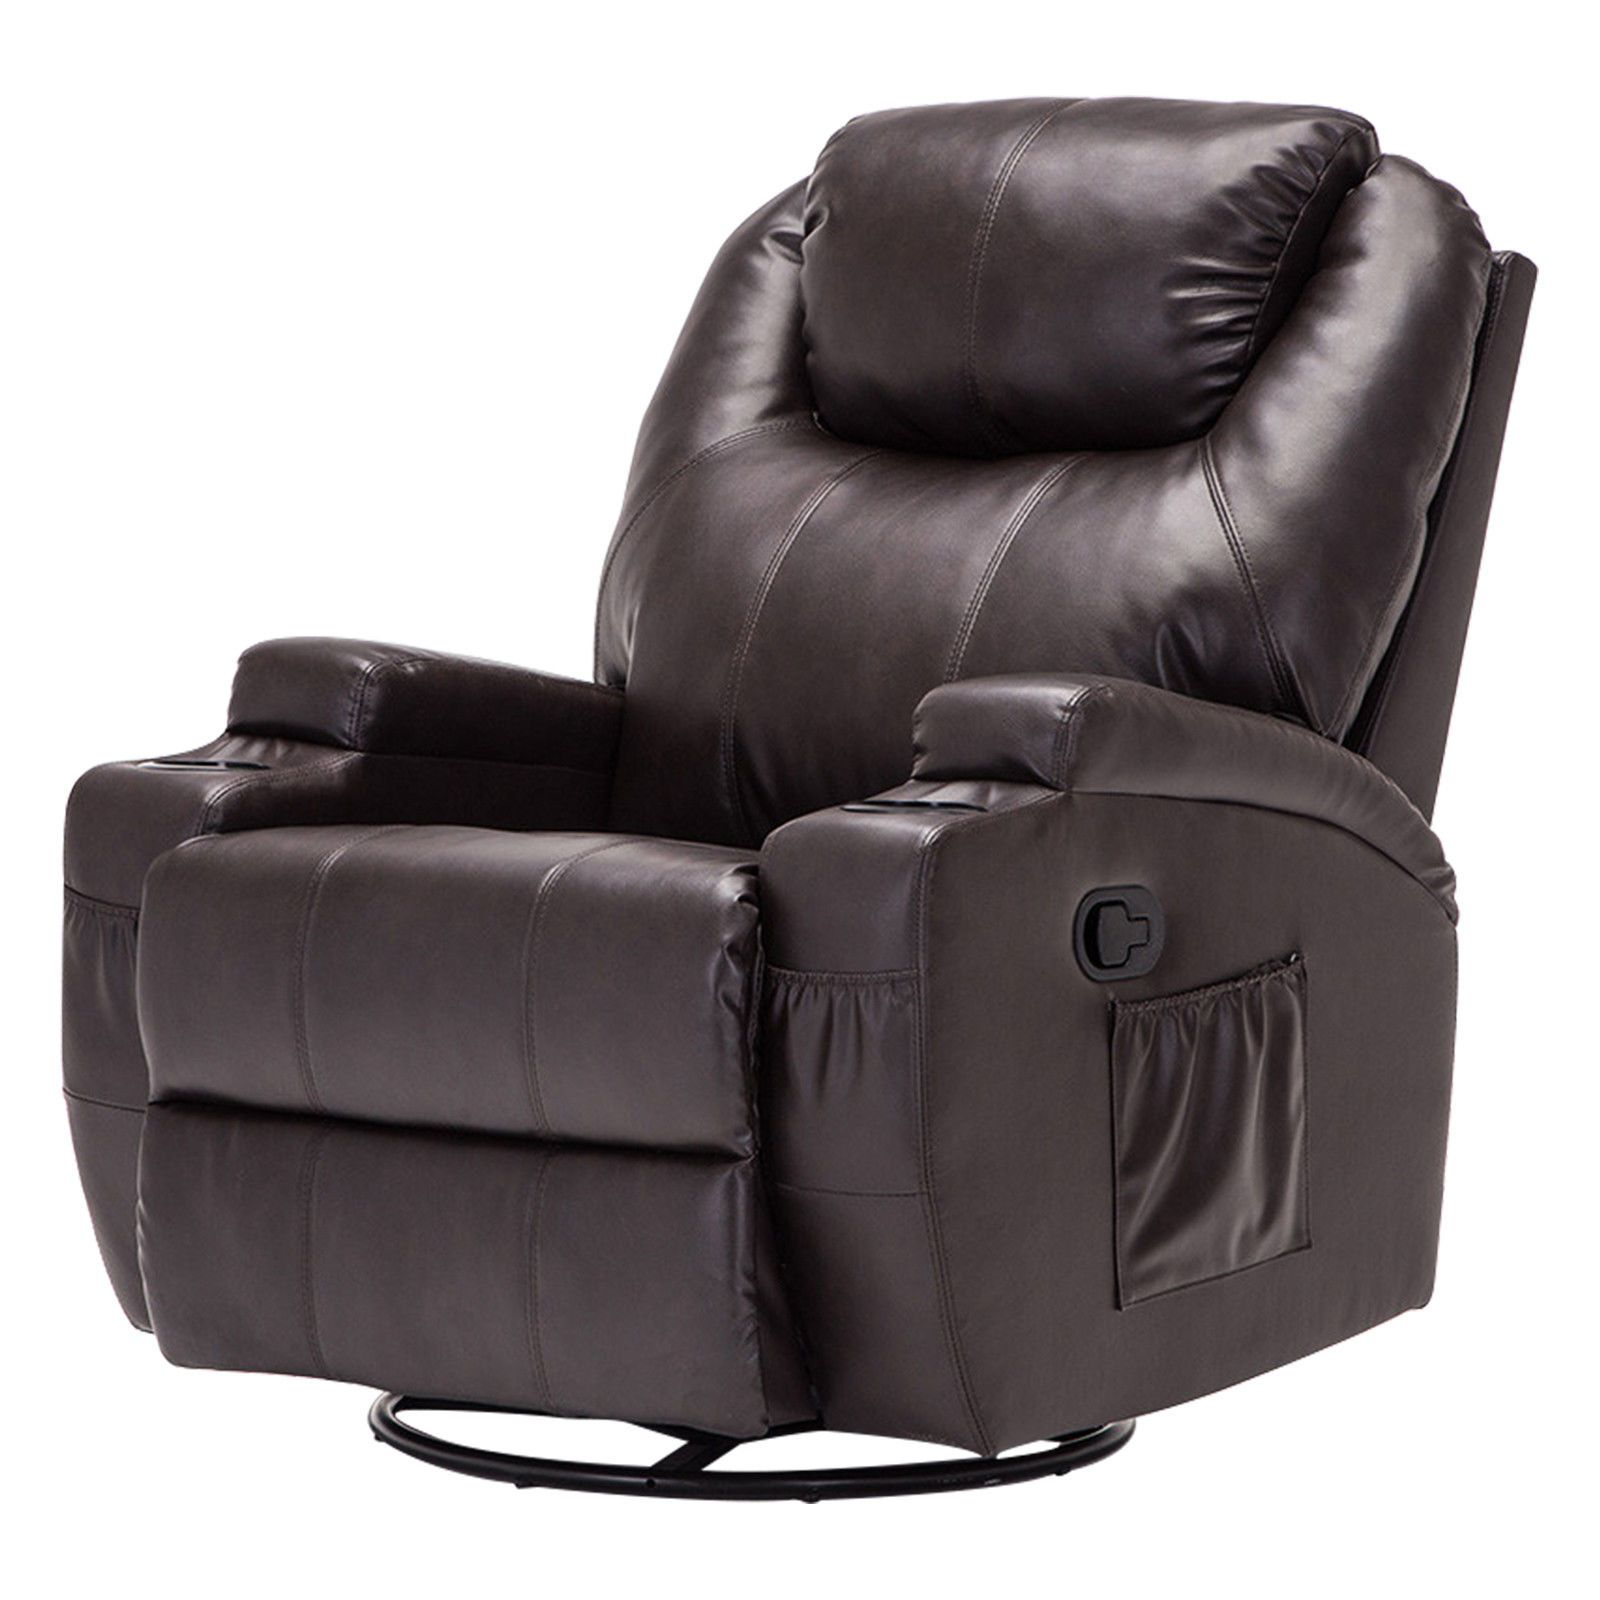 Details About Ergonomic Leather Massage Chair Recliner Vibrating Heated Sofa Lounge Brown W Rc Recliner Chair Ergonomic Chair Couch And Loveseat